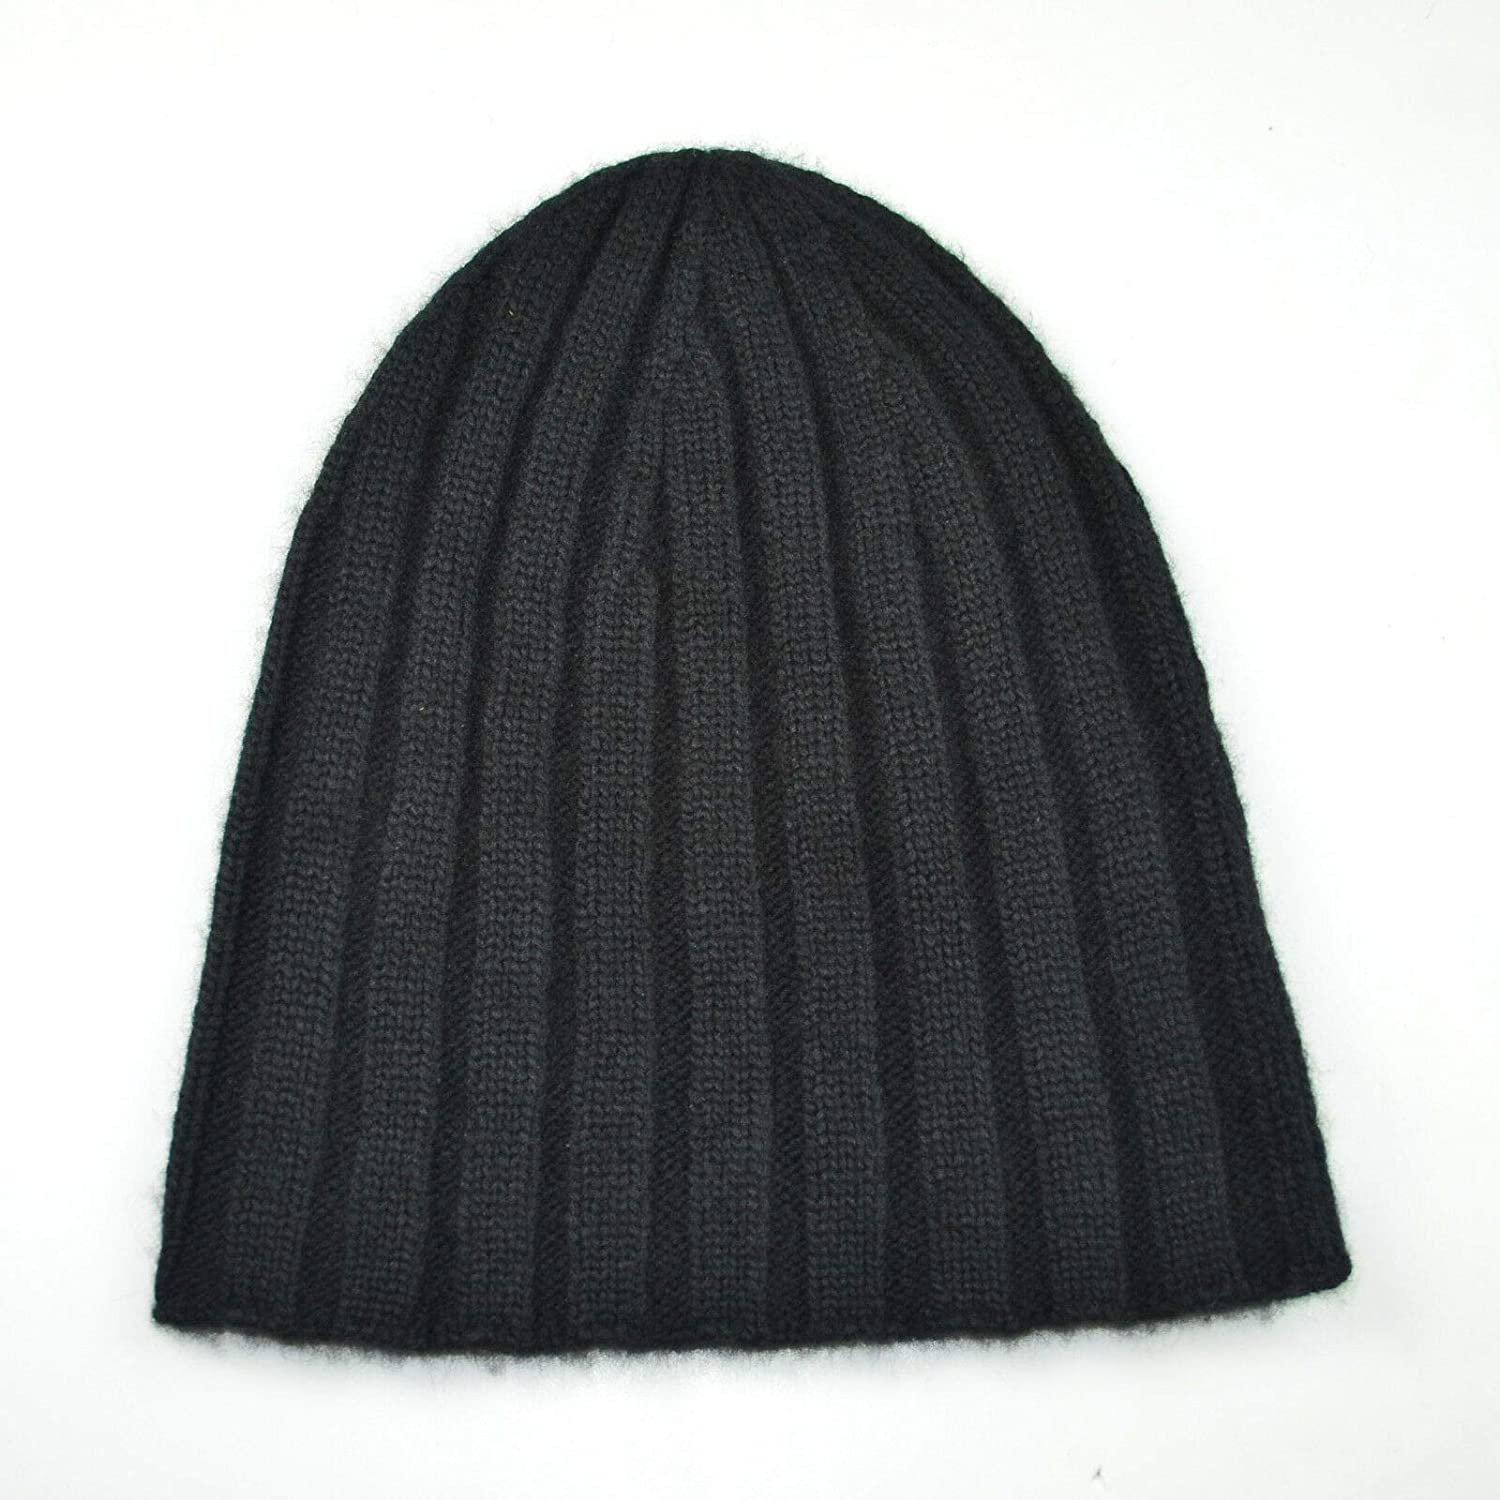 0715e8d9 Polo Ralph Lauren Mens Cable Knit Solid Slouchy Beanie Hat Black O/S at  Amazon Men's Clothing store: